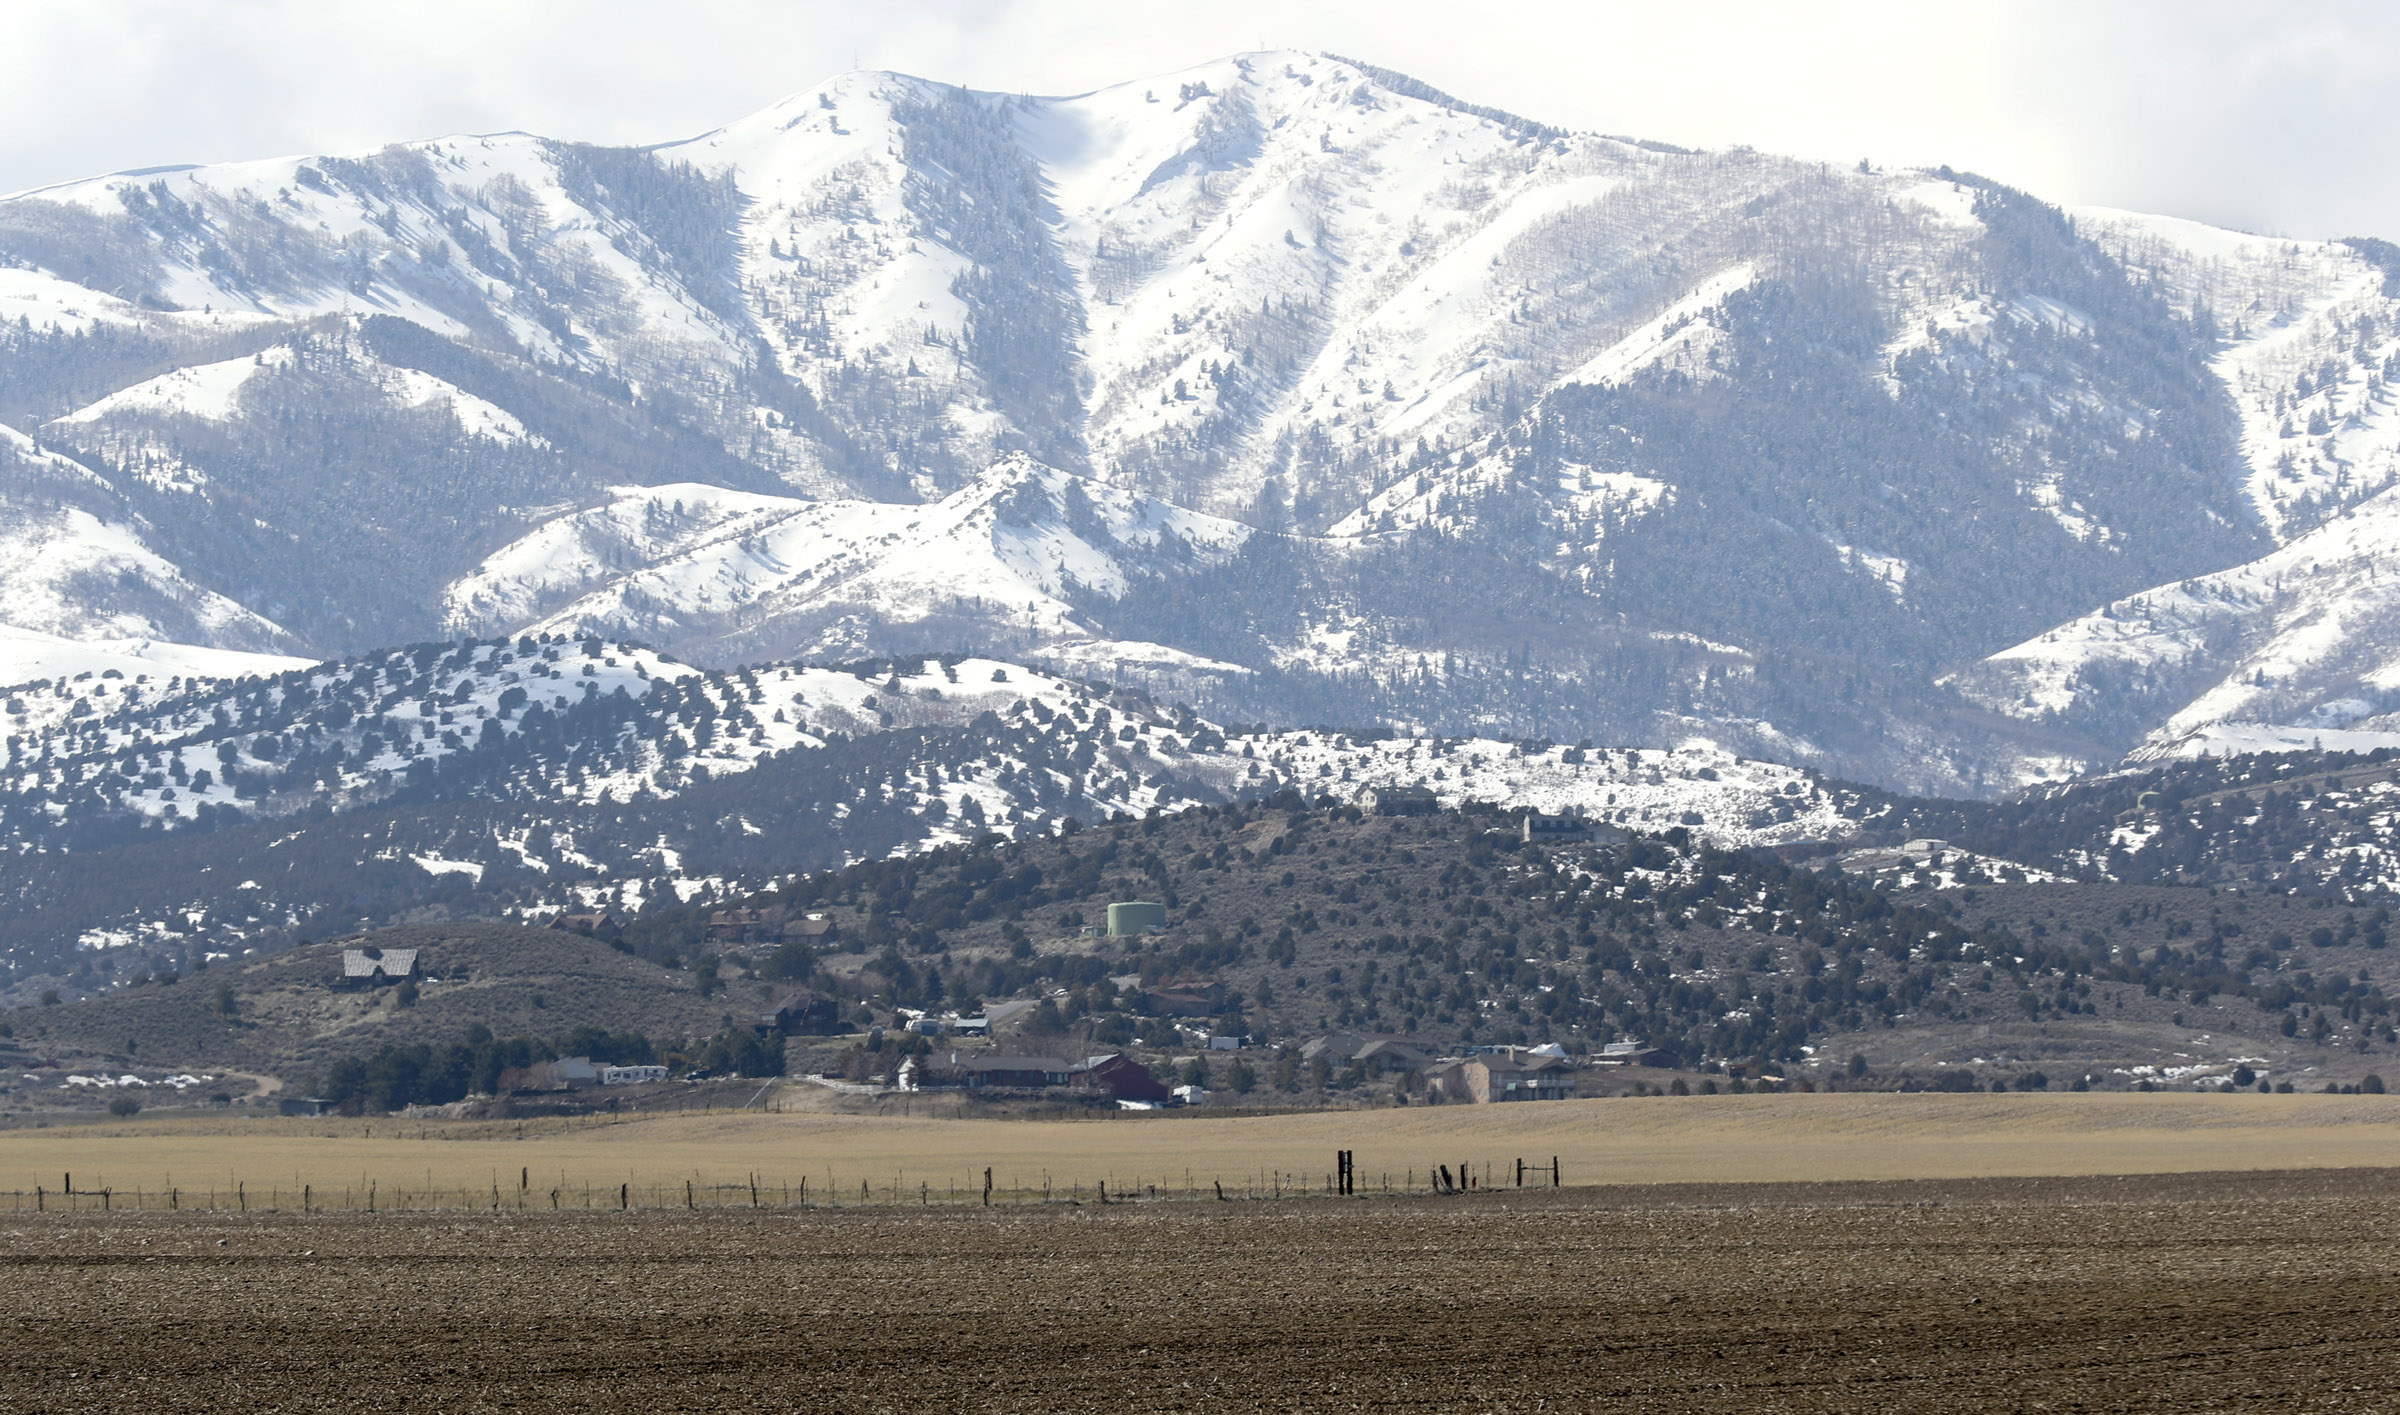 Land between 6300 West and 8500 West and 12400 South and 13100 South in unincorporated Salt Lake County, foreground, is pictured on Monday, March 11, 2019.